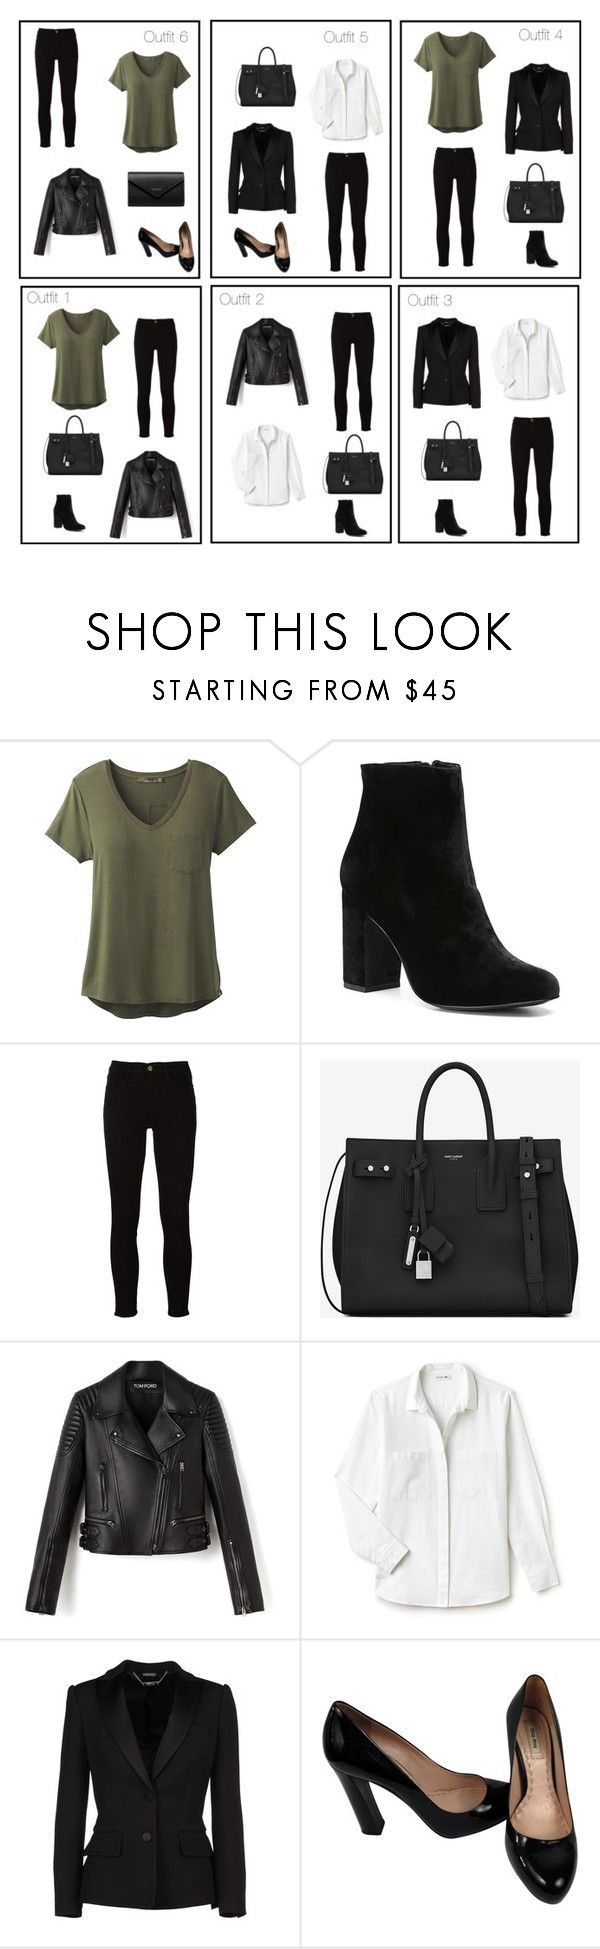 """""""6 outfits - basic clothes"""" by monika1555 on Polyvore featuring prAna, Witchery, Frame, Yves Saint Laurent, Lacoste, Alexander McQueen, Miu Miu and Balenciaga"""